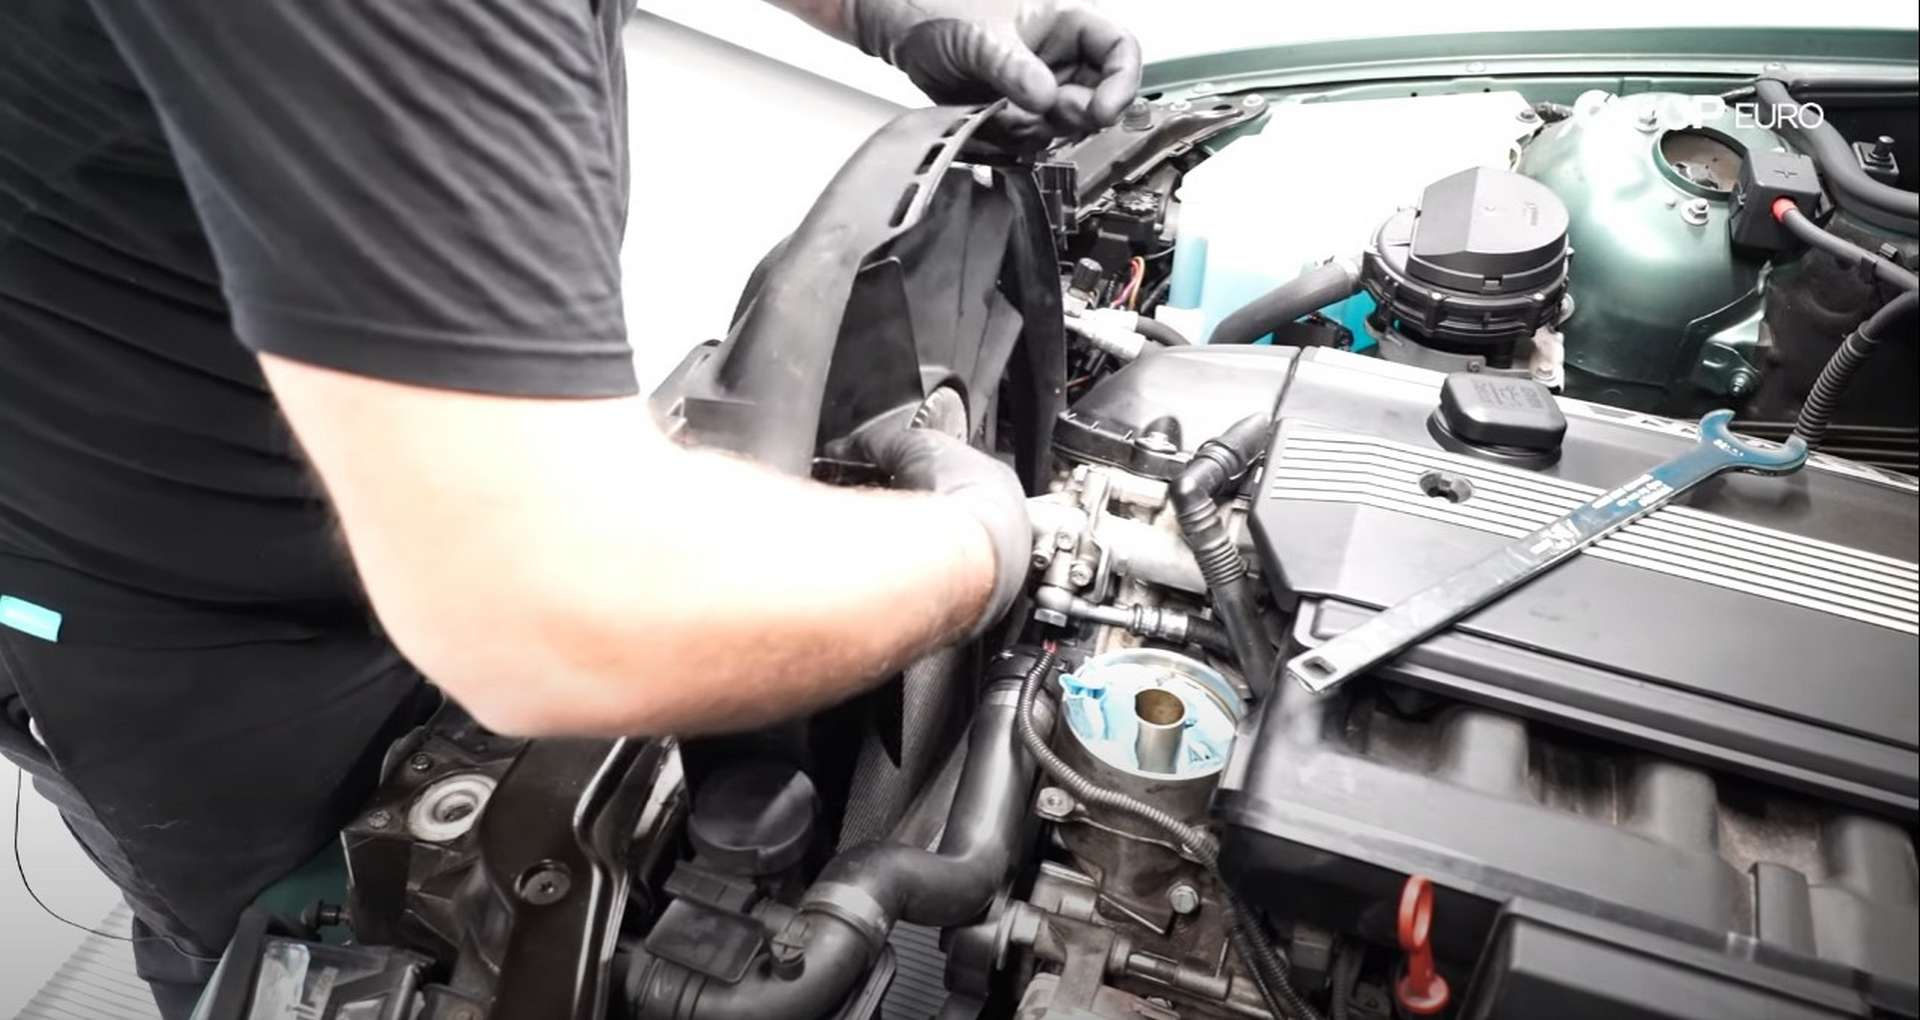 DIY BMW E46 Oil Filter Housing Gasket and VANOS Line Replacement installing the fan assembly